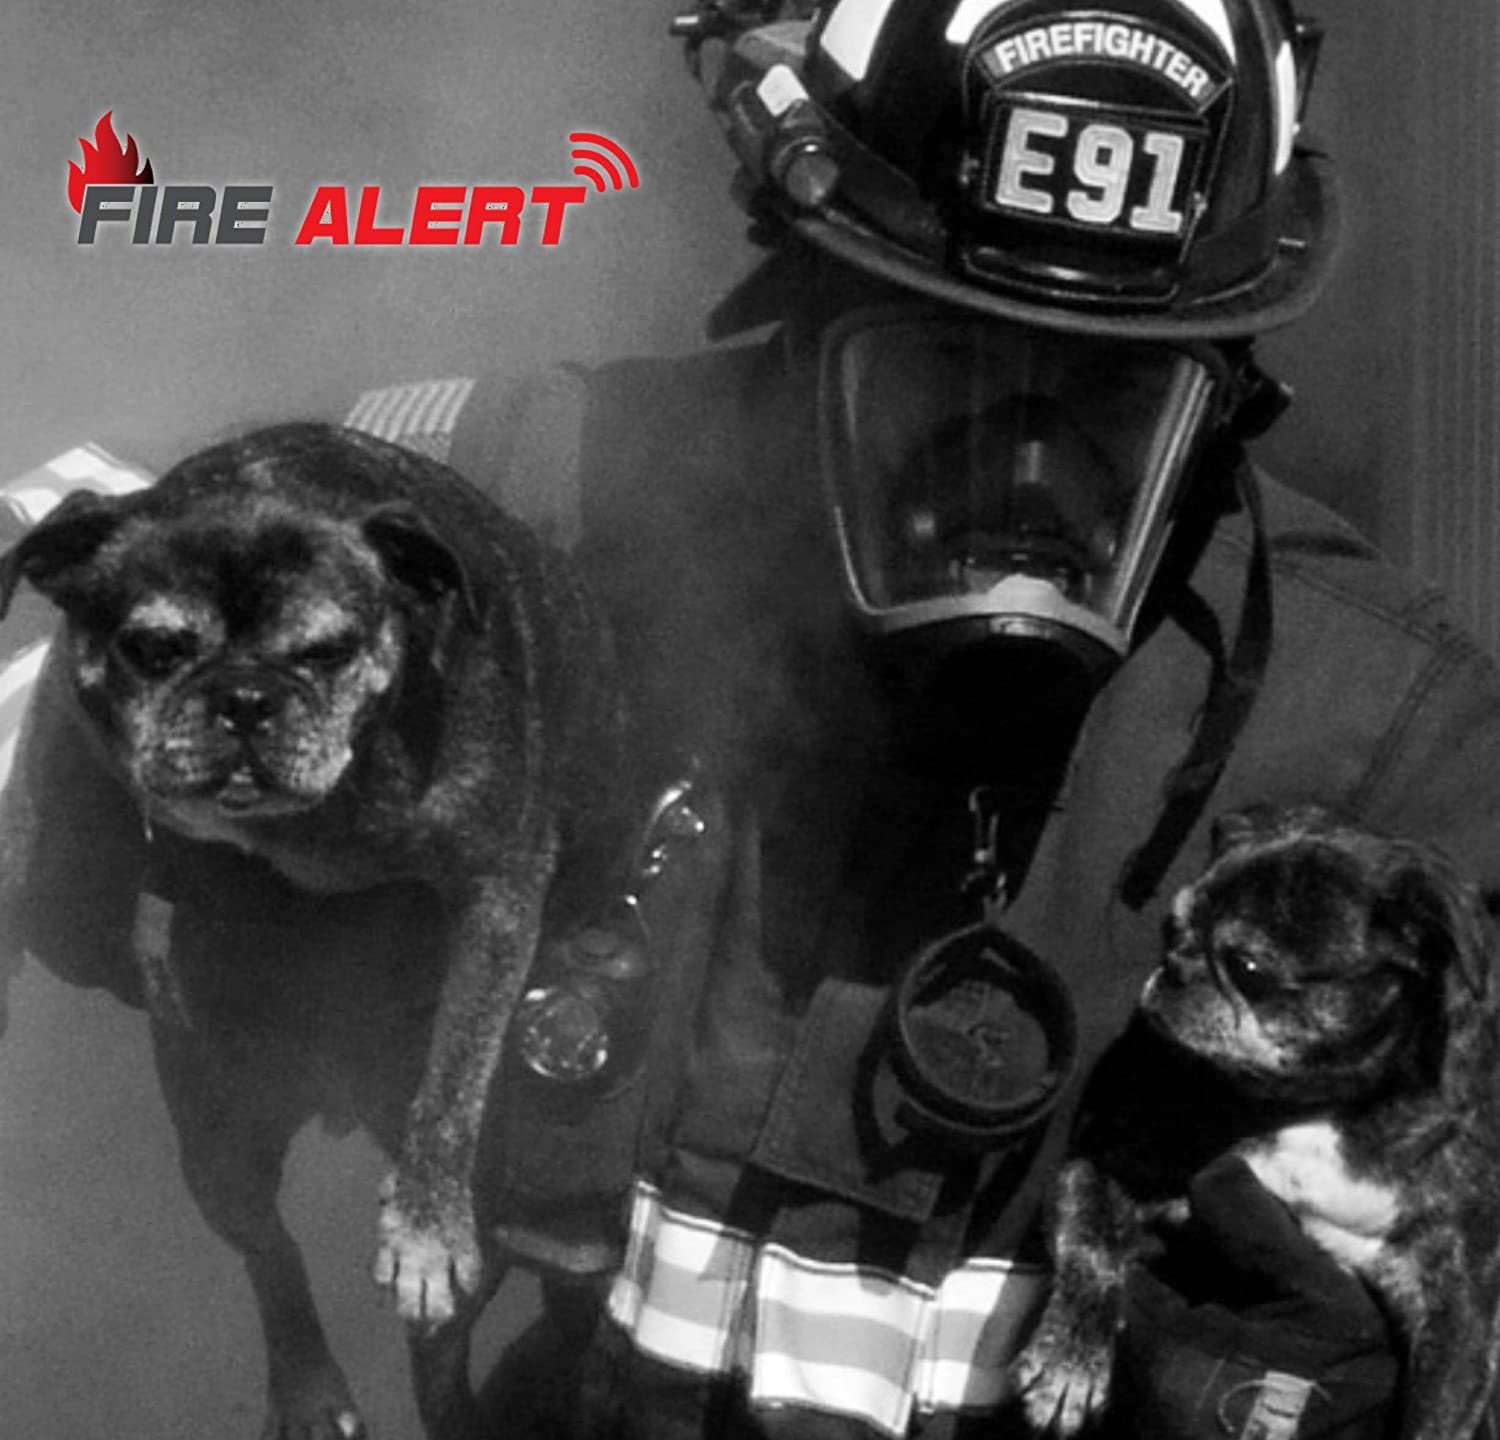 Fire Alert DIY Home Emergency Kit for Mobile alerts of Smoke, CO, Water, and Freeze